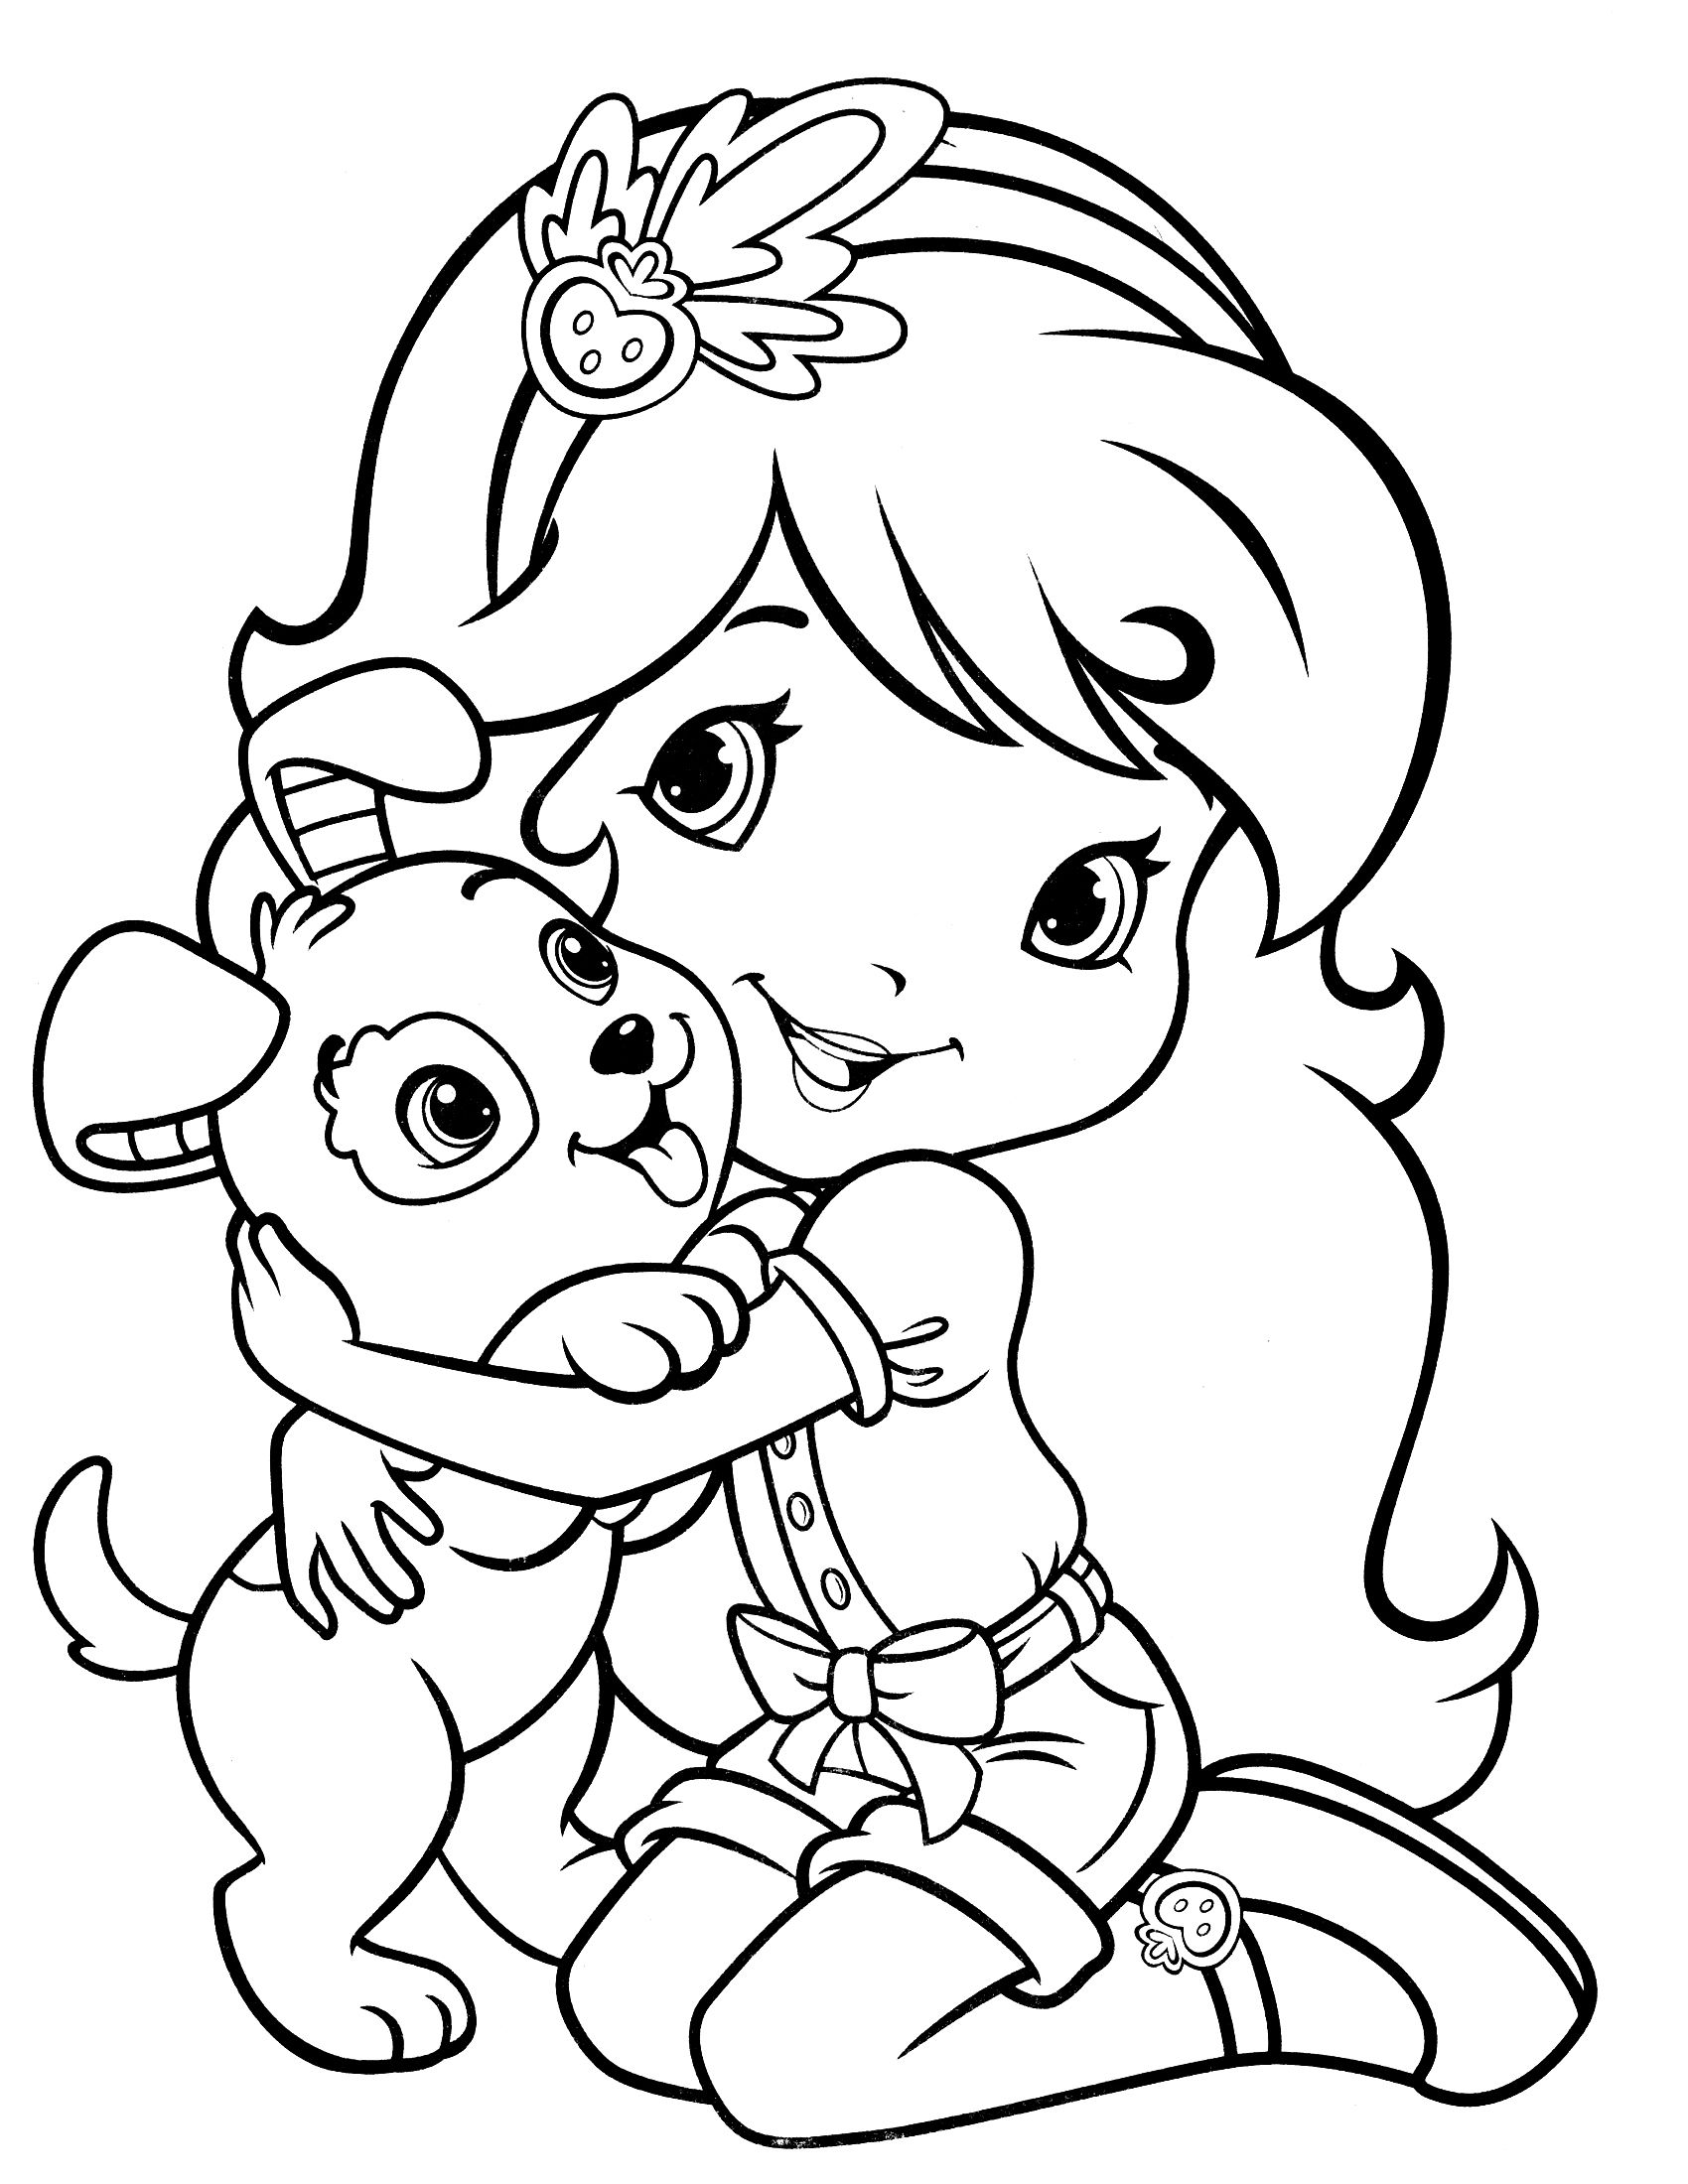 Strawberry Shortcake Coloring Pages Strawberryshortcakecoloringpage73 1700×2200  Coloring